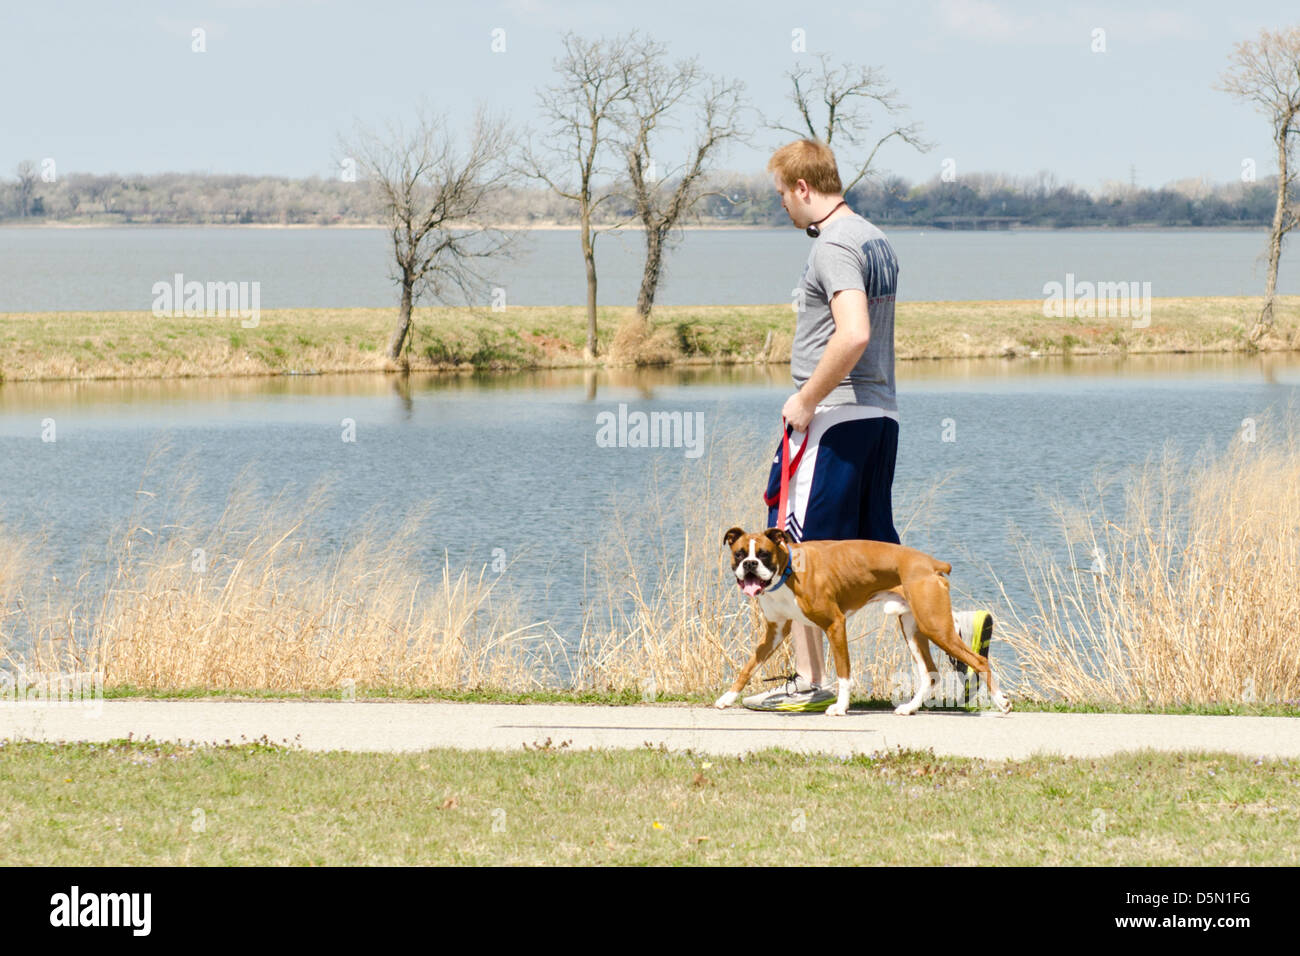 A young red-headed man walks his boxer dog on the trails around Overholser lake in Oklahoma City, Oklahoma, USA. - Stock Image